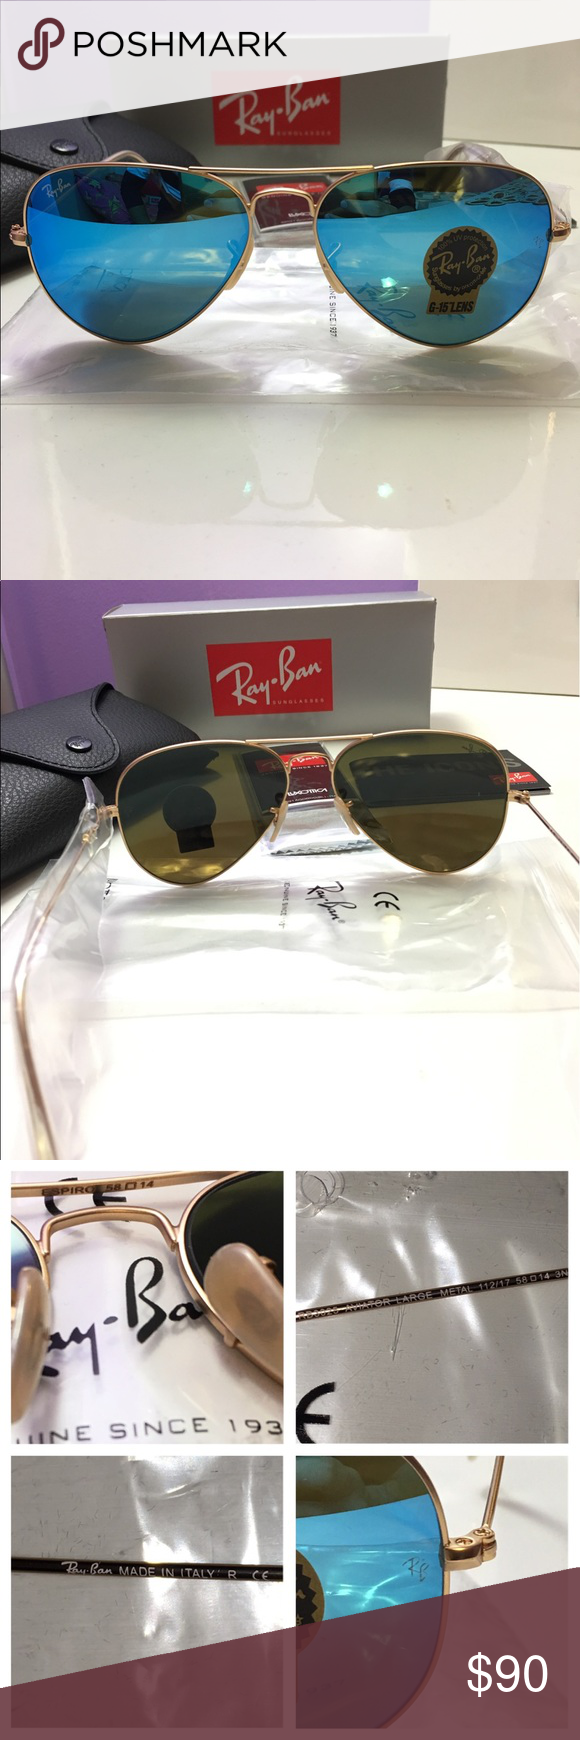 Ray-Ban 3025 112 17 Aviator Blue Gold 58mm Ray-Ban 3025 112 17 Aviator  Blue Gold Gender  Unisex Model  RB112 17 Color Reference  Blue Lens Shape   Aviator ... a16217acbfa8